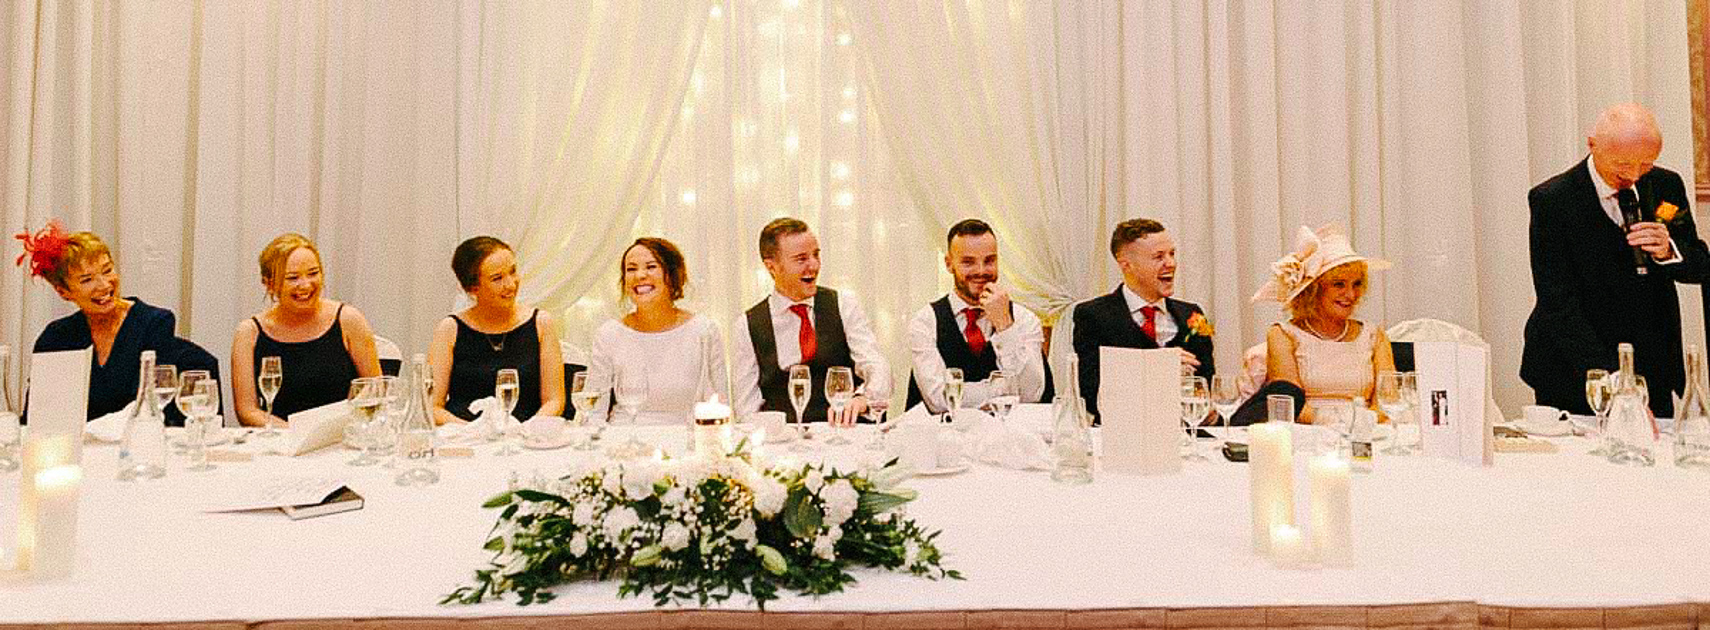 Clontarf Castle Wedding Reception Photograph